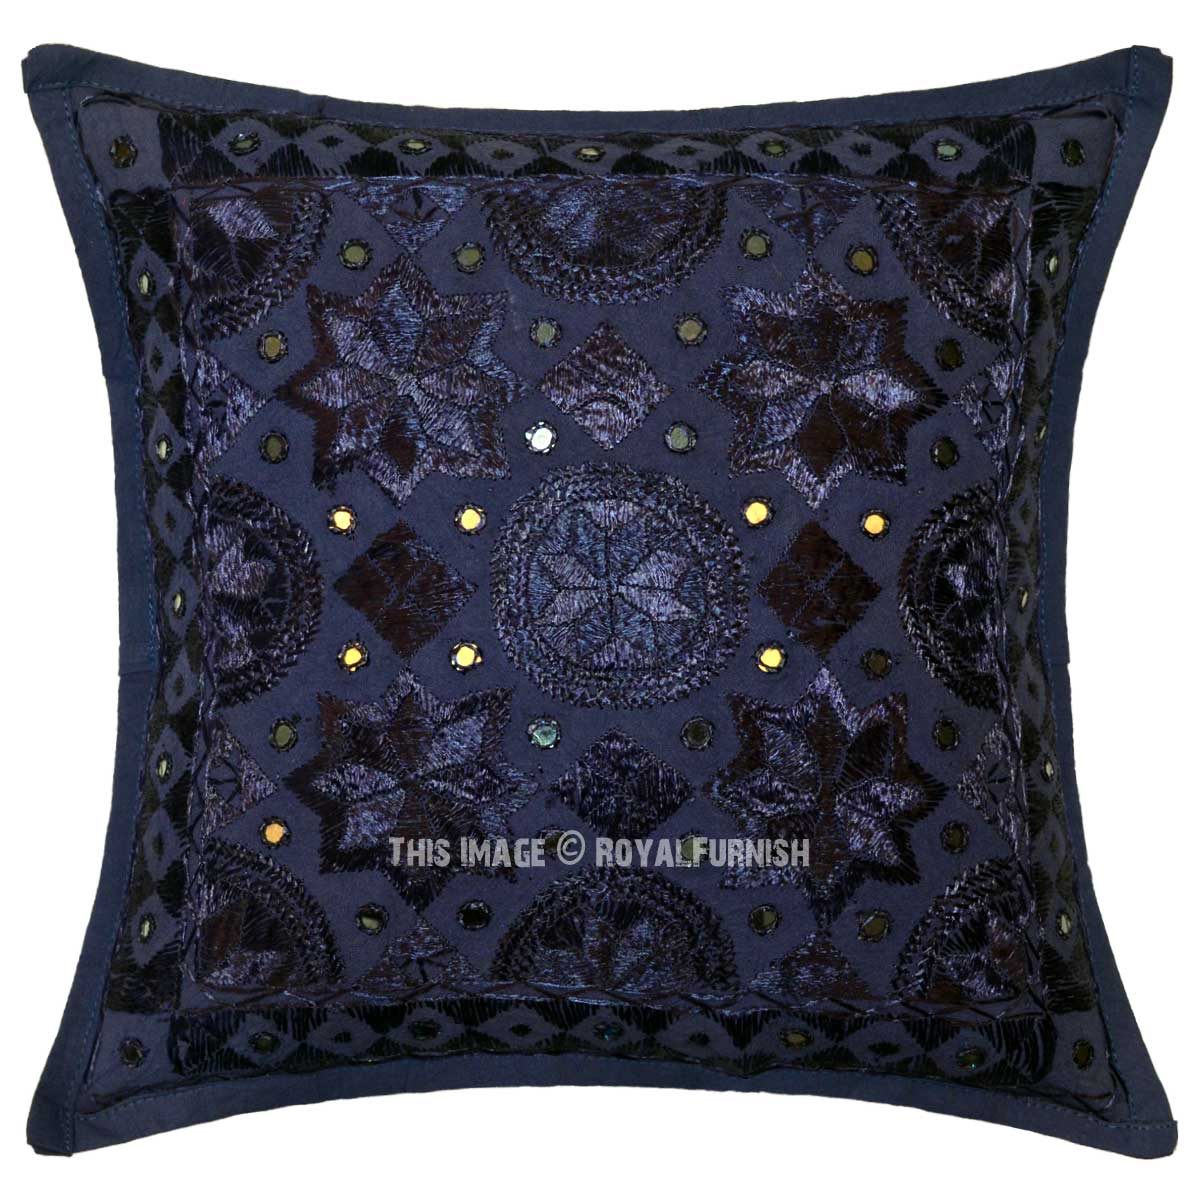 Decorative Pillows Blue : Blue Decorative Star Mirrored Unique Handmade Throw Pillow Case 16X16 - RoyalFurnish.com